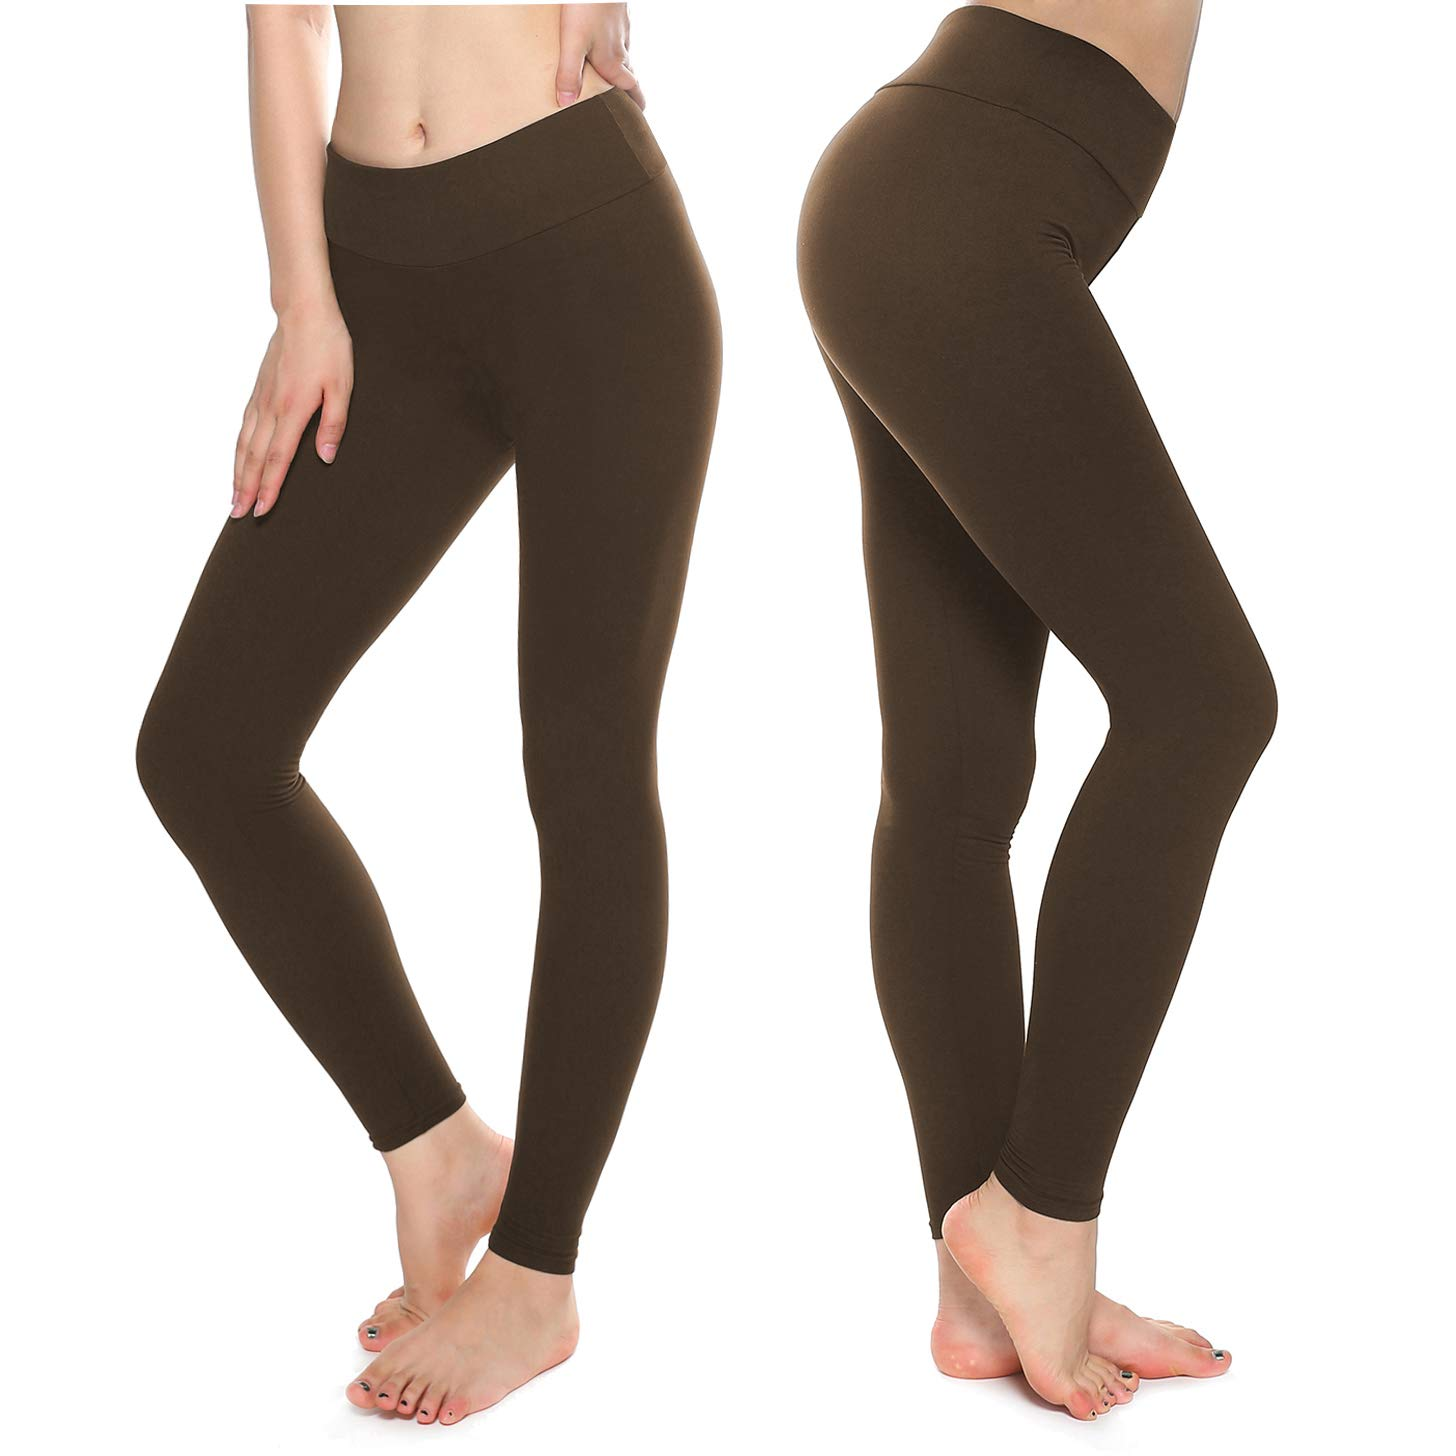 KT Buttery Soft Leggings for Women - High Waisted Leggings Pants with Pockets - Reg & Plus Size